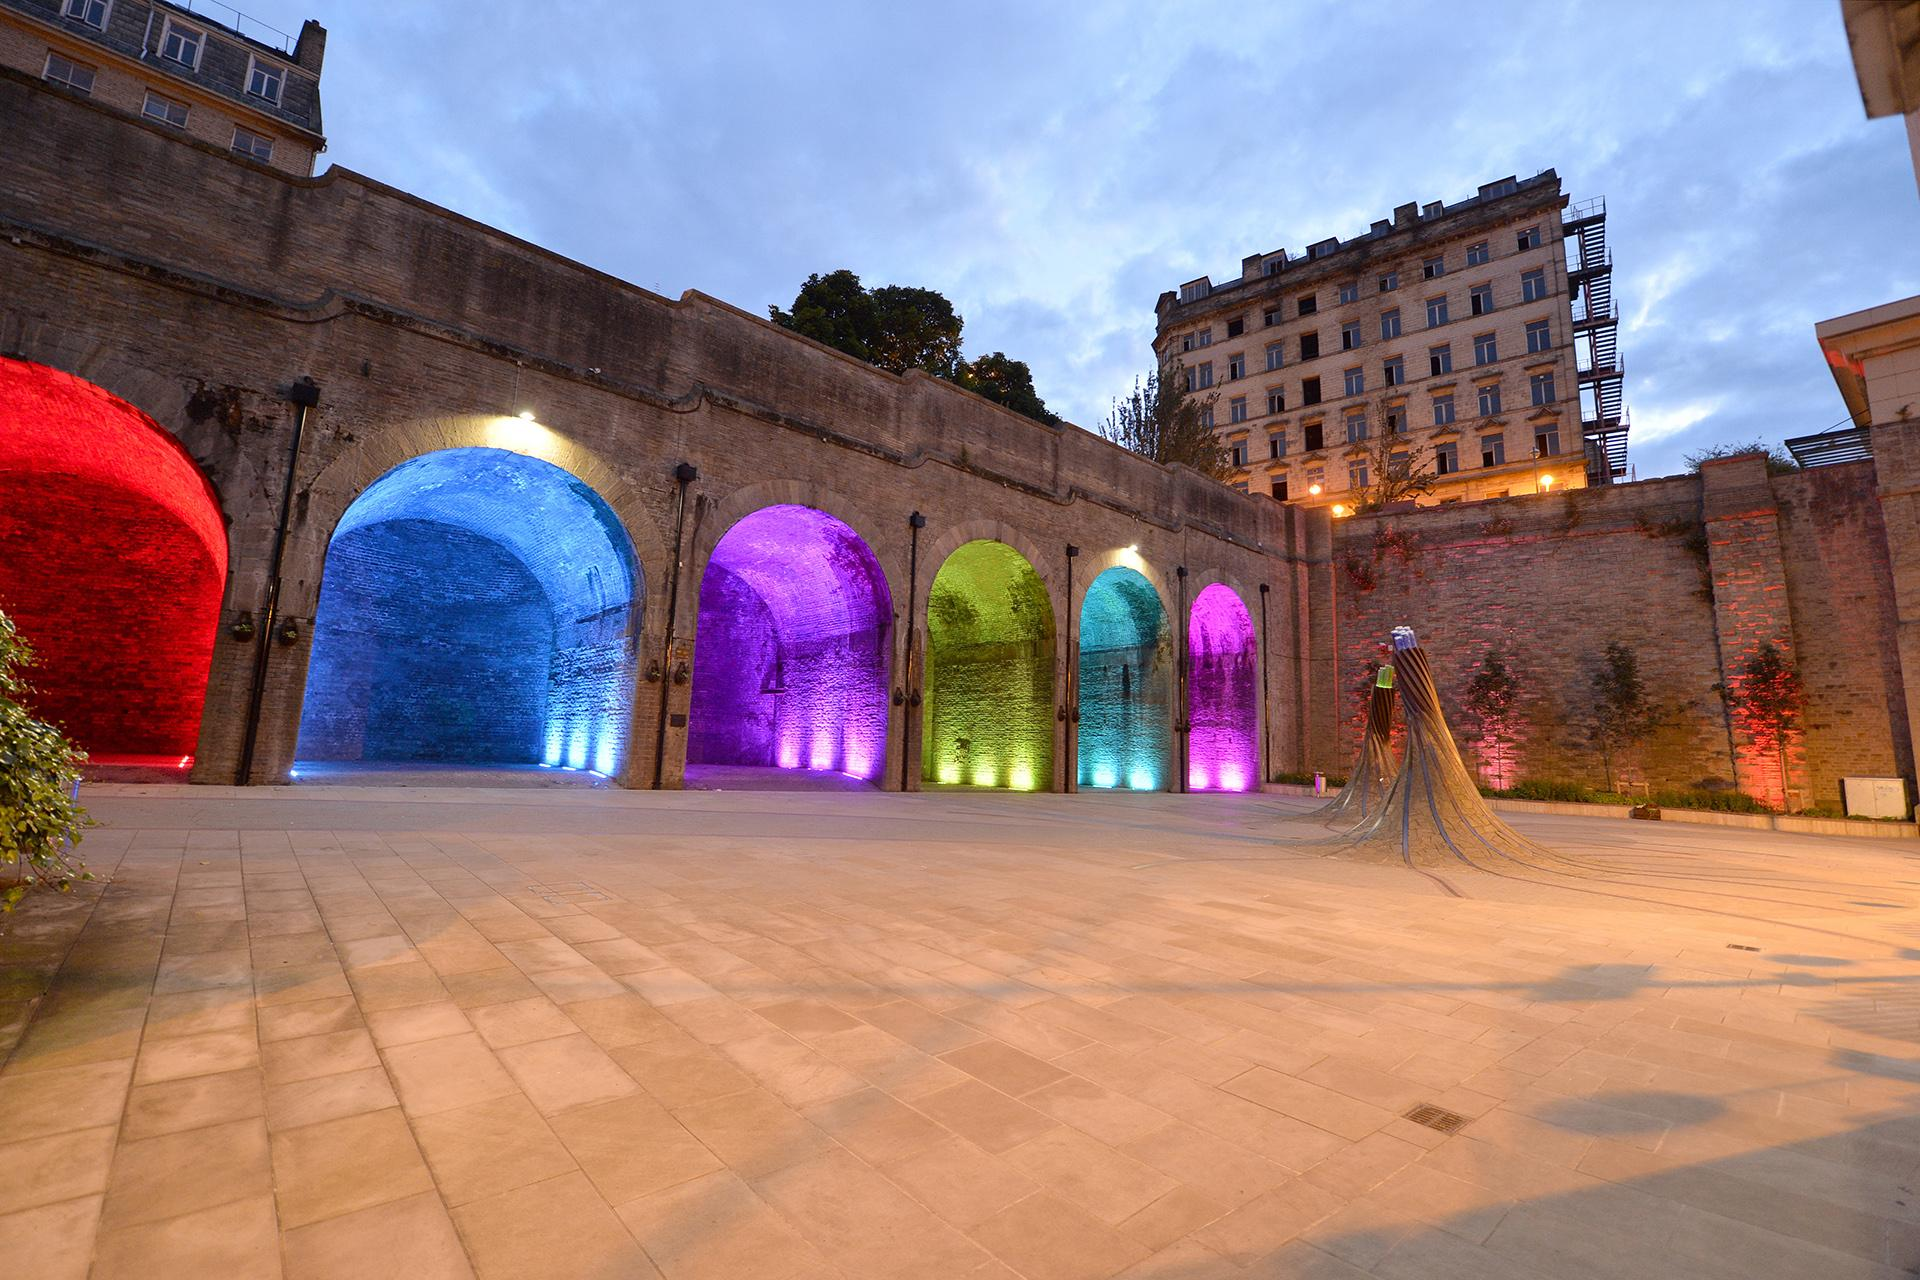 SCULPline floodlights have transformed Saint Blaise Square into a warm, welcoming and fun nocturnal landscape